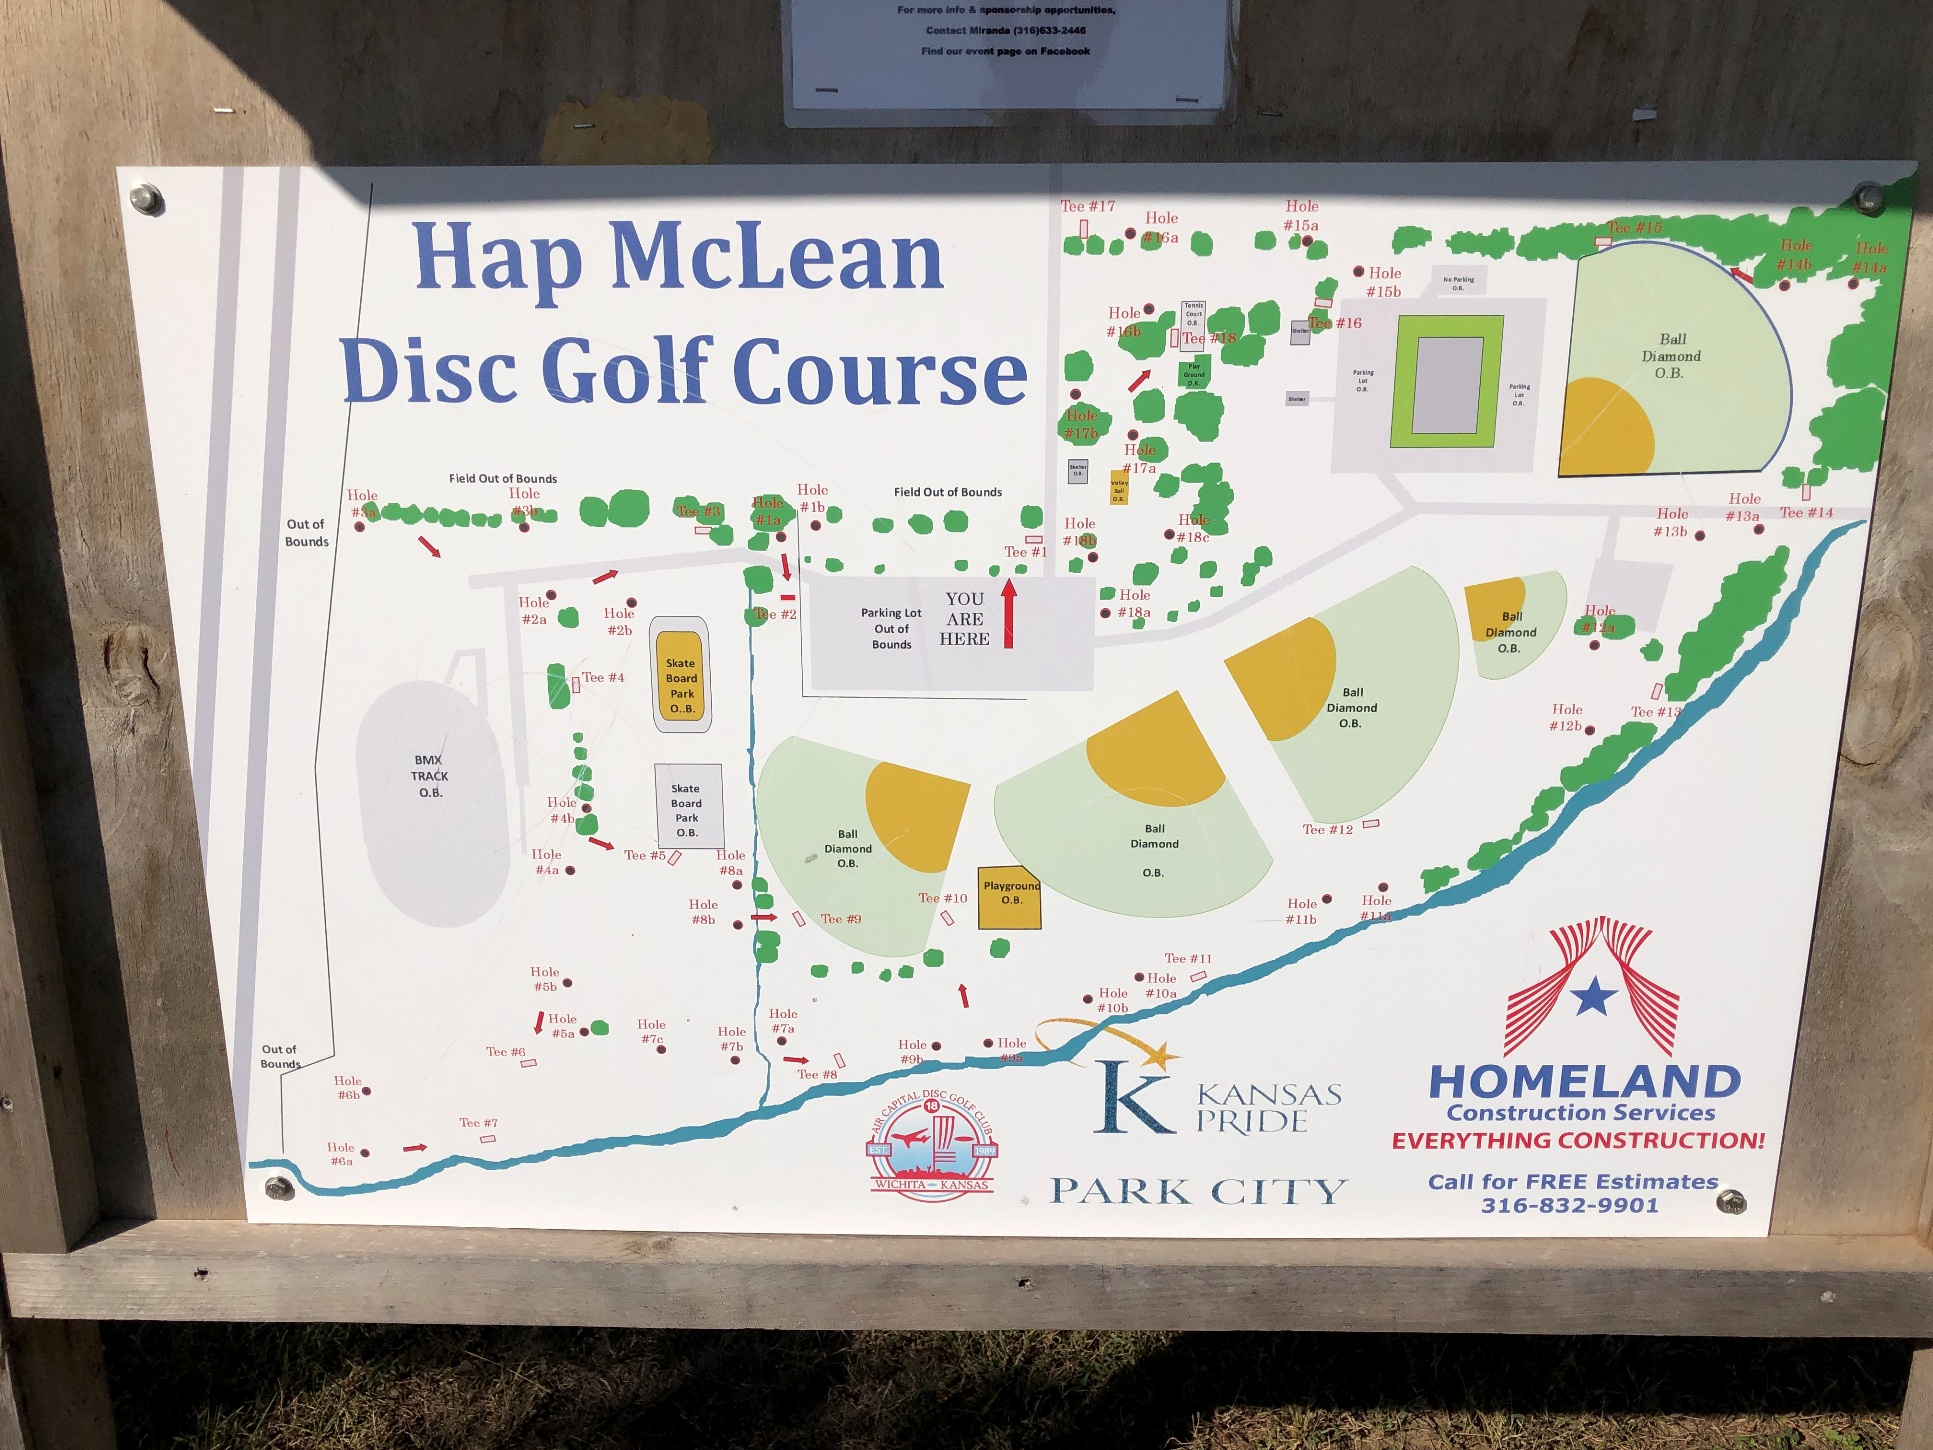 Hap McLean Disc Golf Course